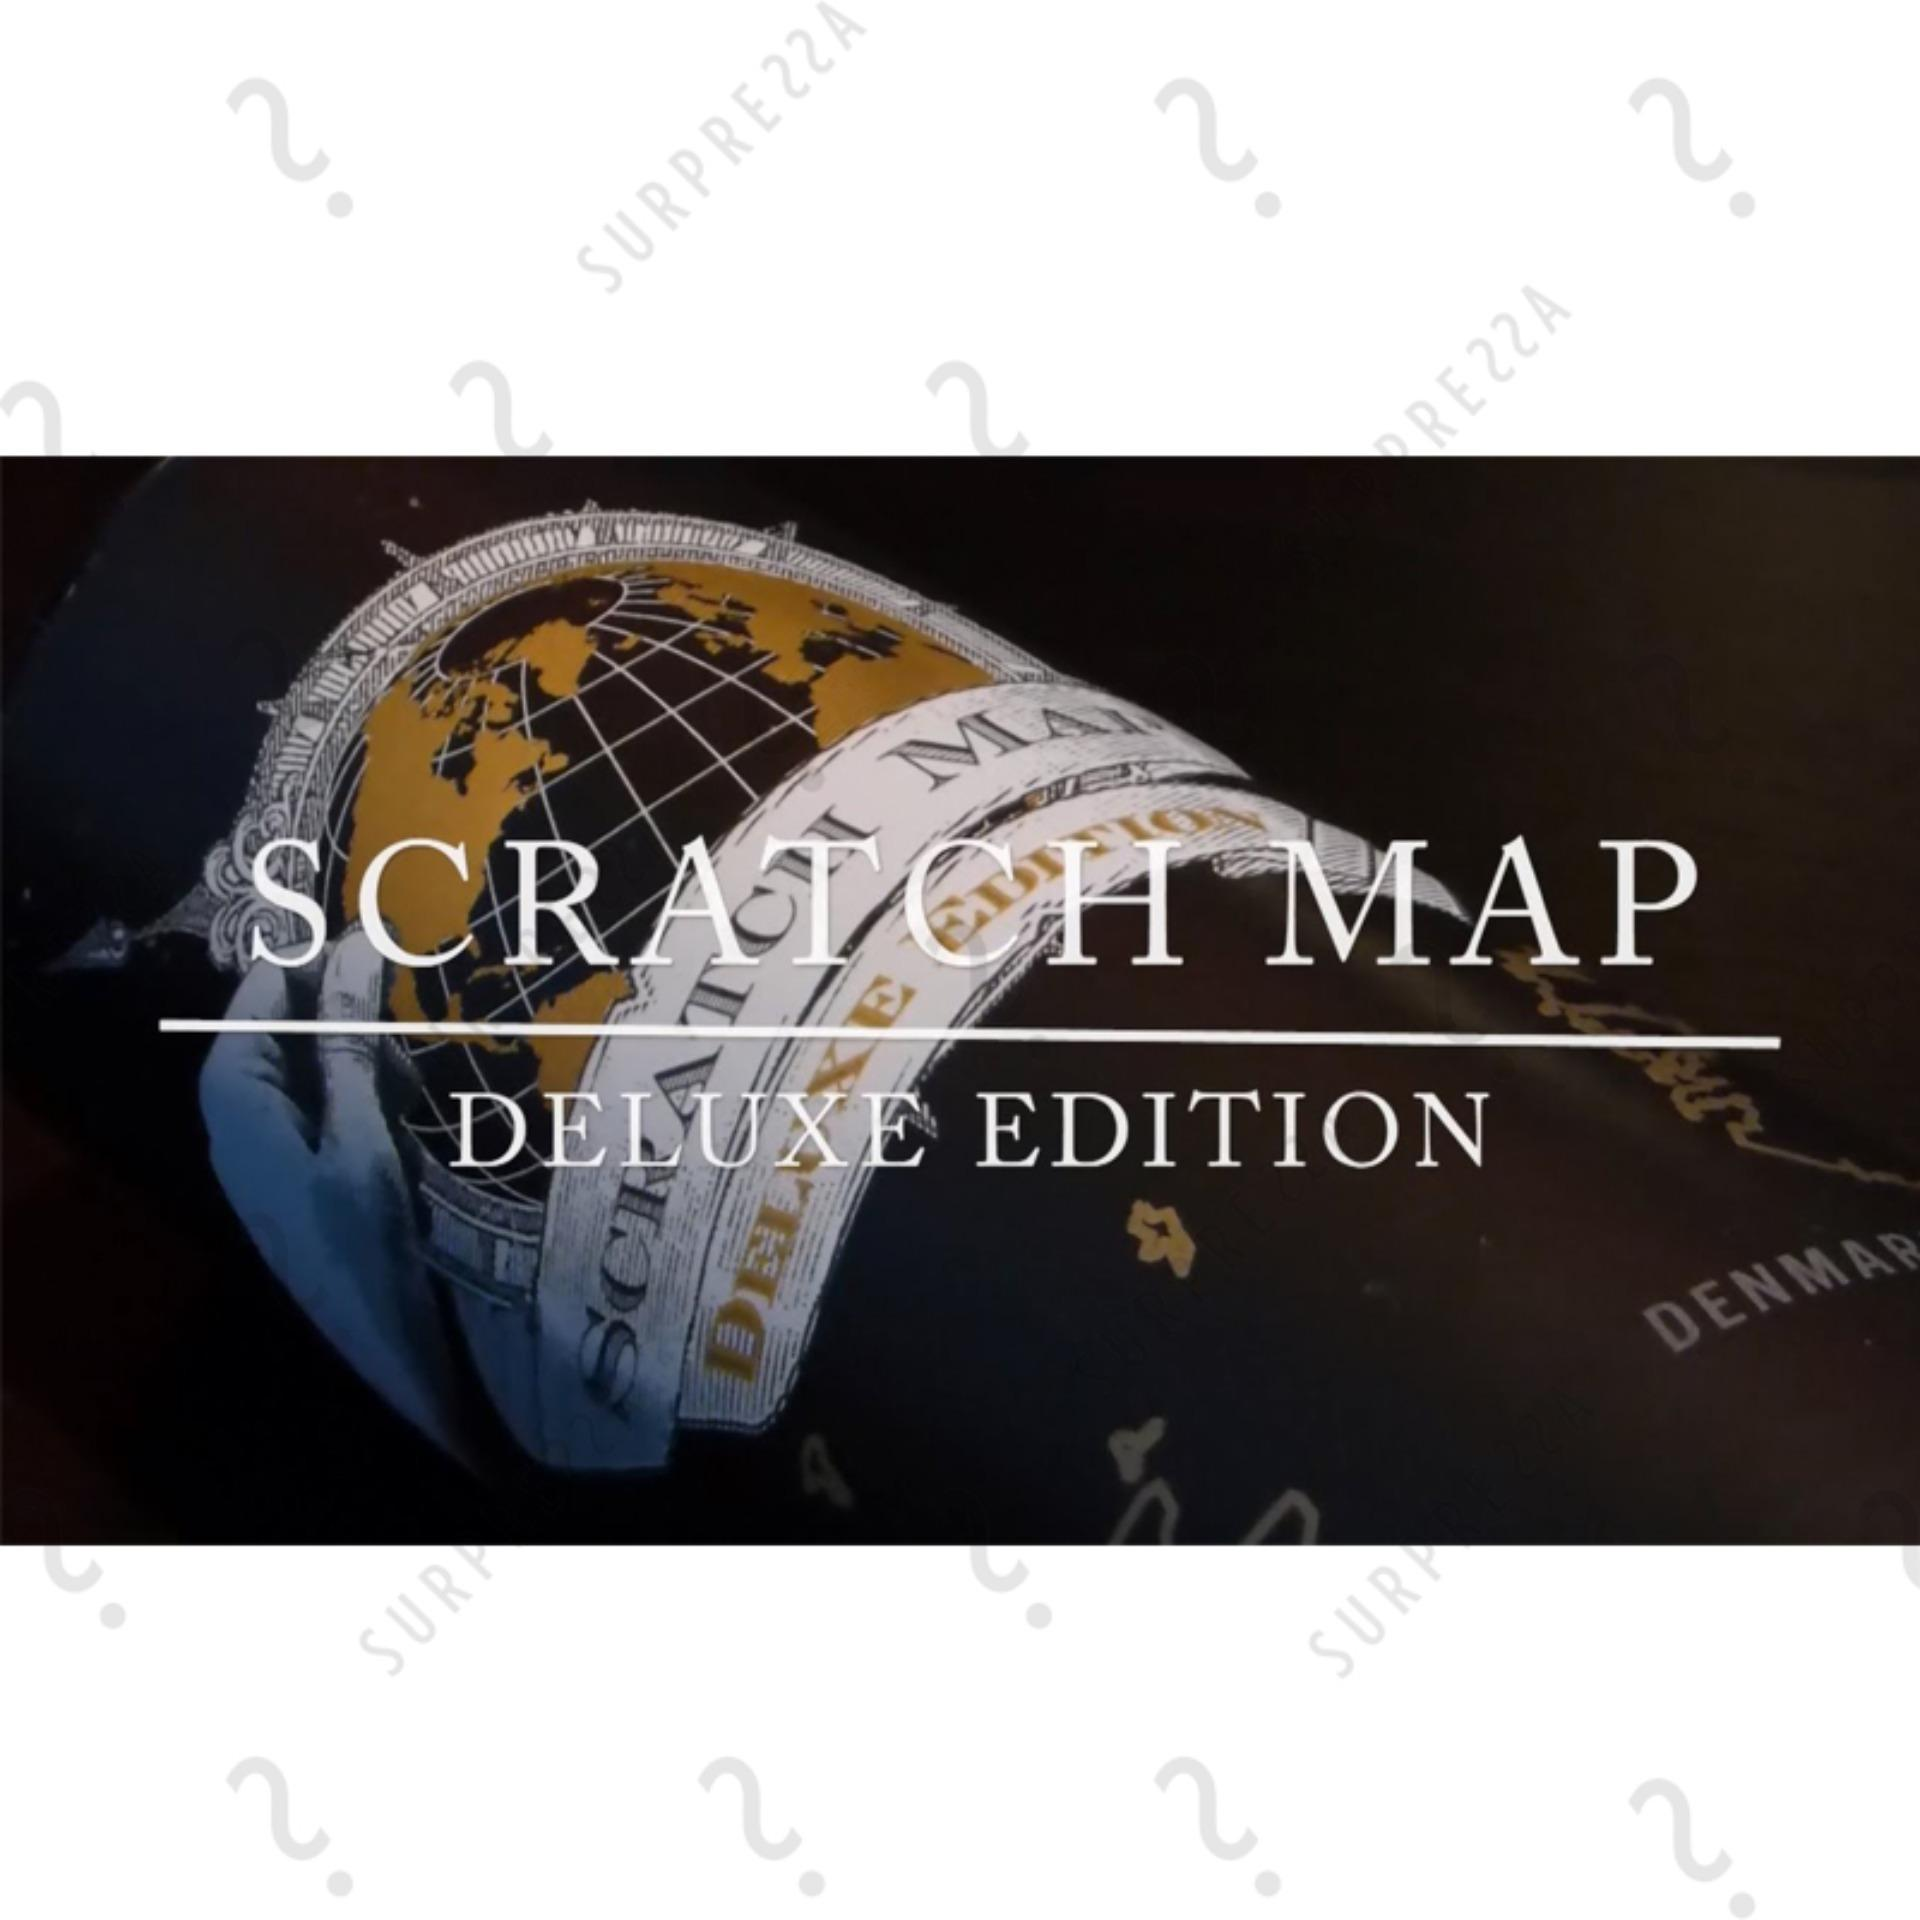 Buy Louis will Novelty World Map Educational Scratch Off Map Poster Source · Deluxe Travel Edition Scratch World Map Poster Black and Gold